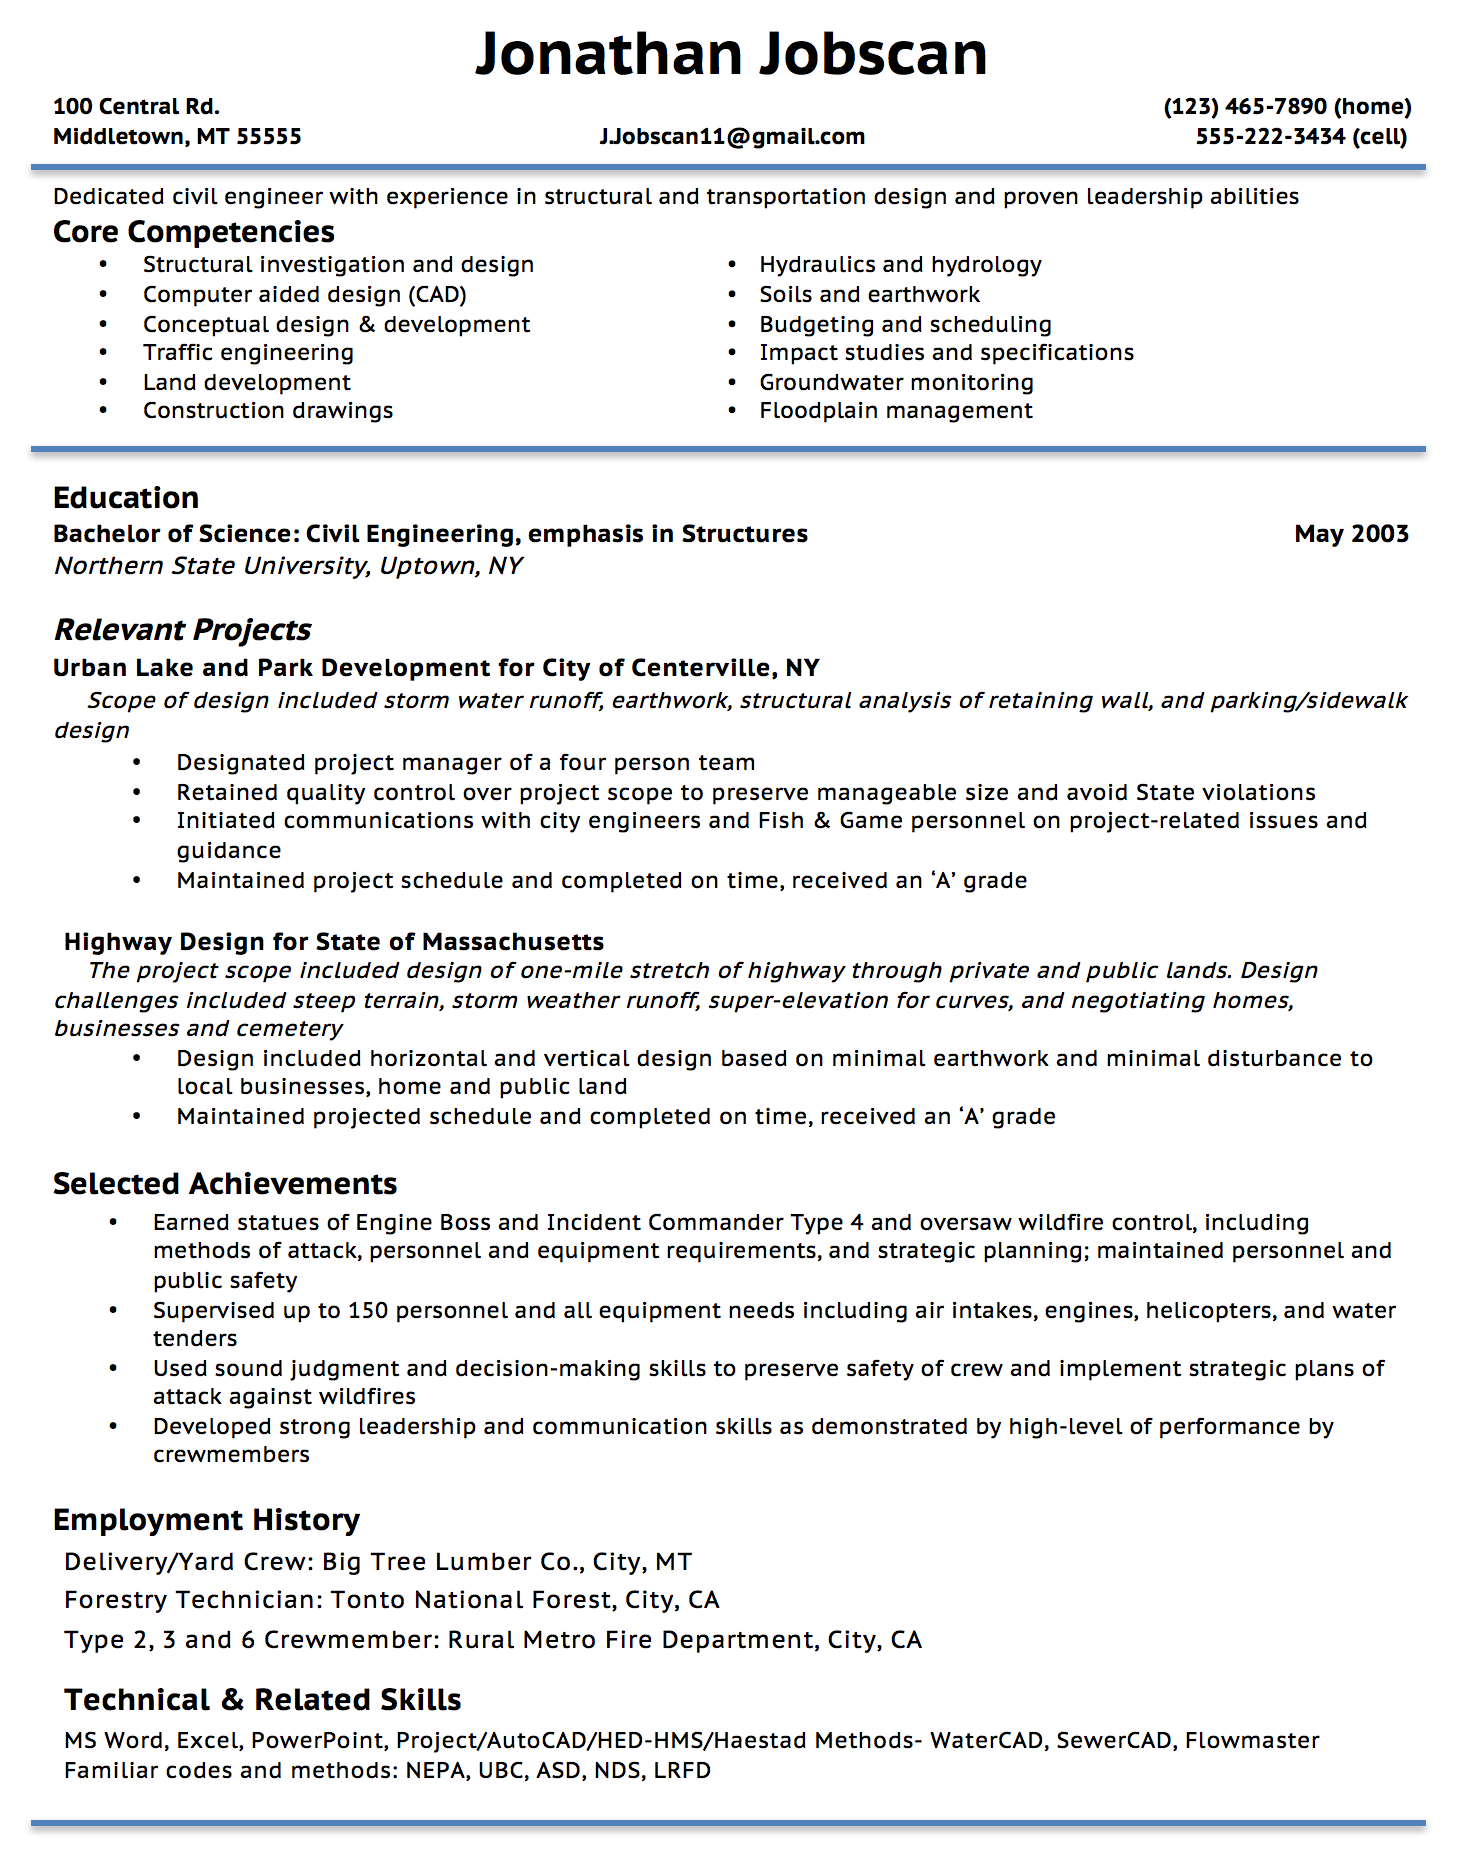 Opposenewapstandardsus  Unique Resume Writing Guide  Jobscan With Exciting Example Of A Functional Resume Format With Alluring Resume For Security Guard Also Customer Service Call Center Resume In Addition Resume Vocabulary And Teenage Resume Template As Well As Teaching Resume Sample Additionally Google Drive Resume Templates From Jobscanco With Opposenewapstandardsus  Exciting Resume Writing Guide  Jobscan With Alluring Example Of A Functional Resume Format And Unique Resume For Security Guard Also Customer Service Call Center Resume In Addition Resume Vocabulary From Jobscanco